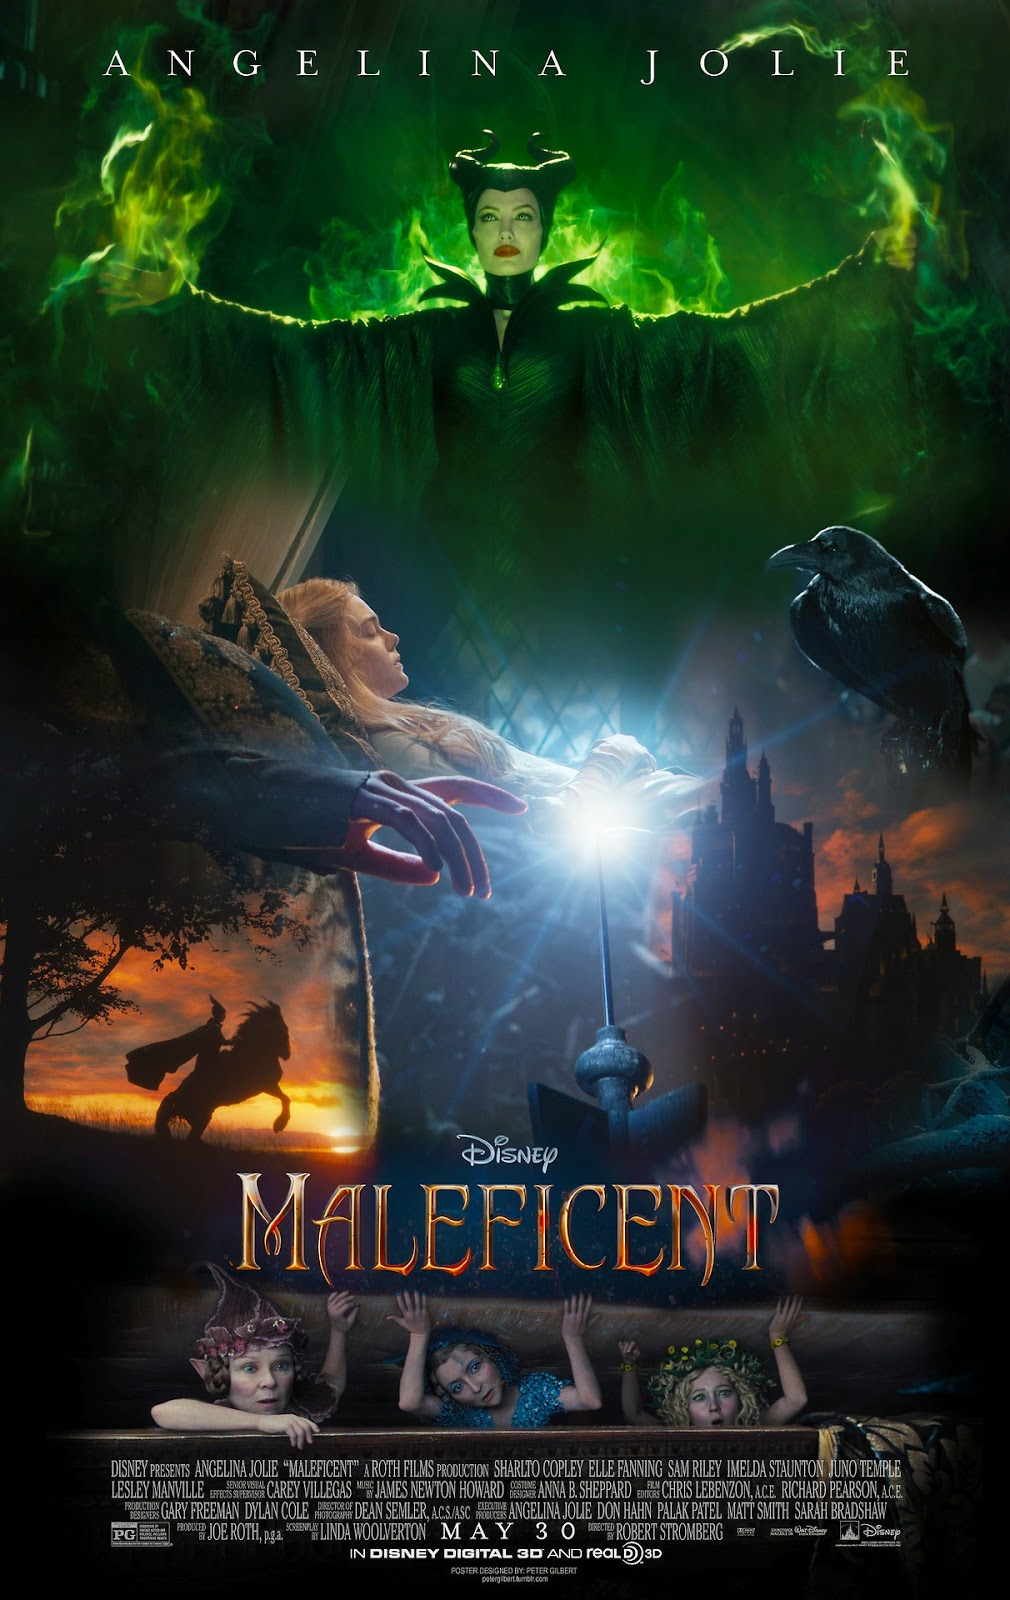 My Review of Disney'sMaleficent